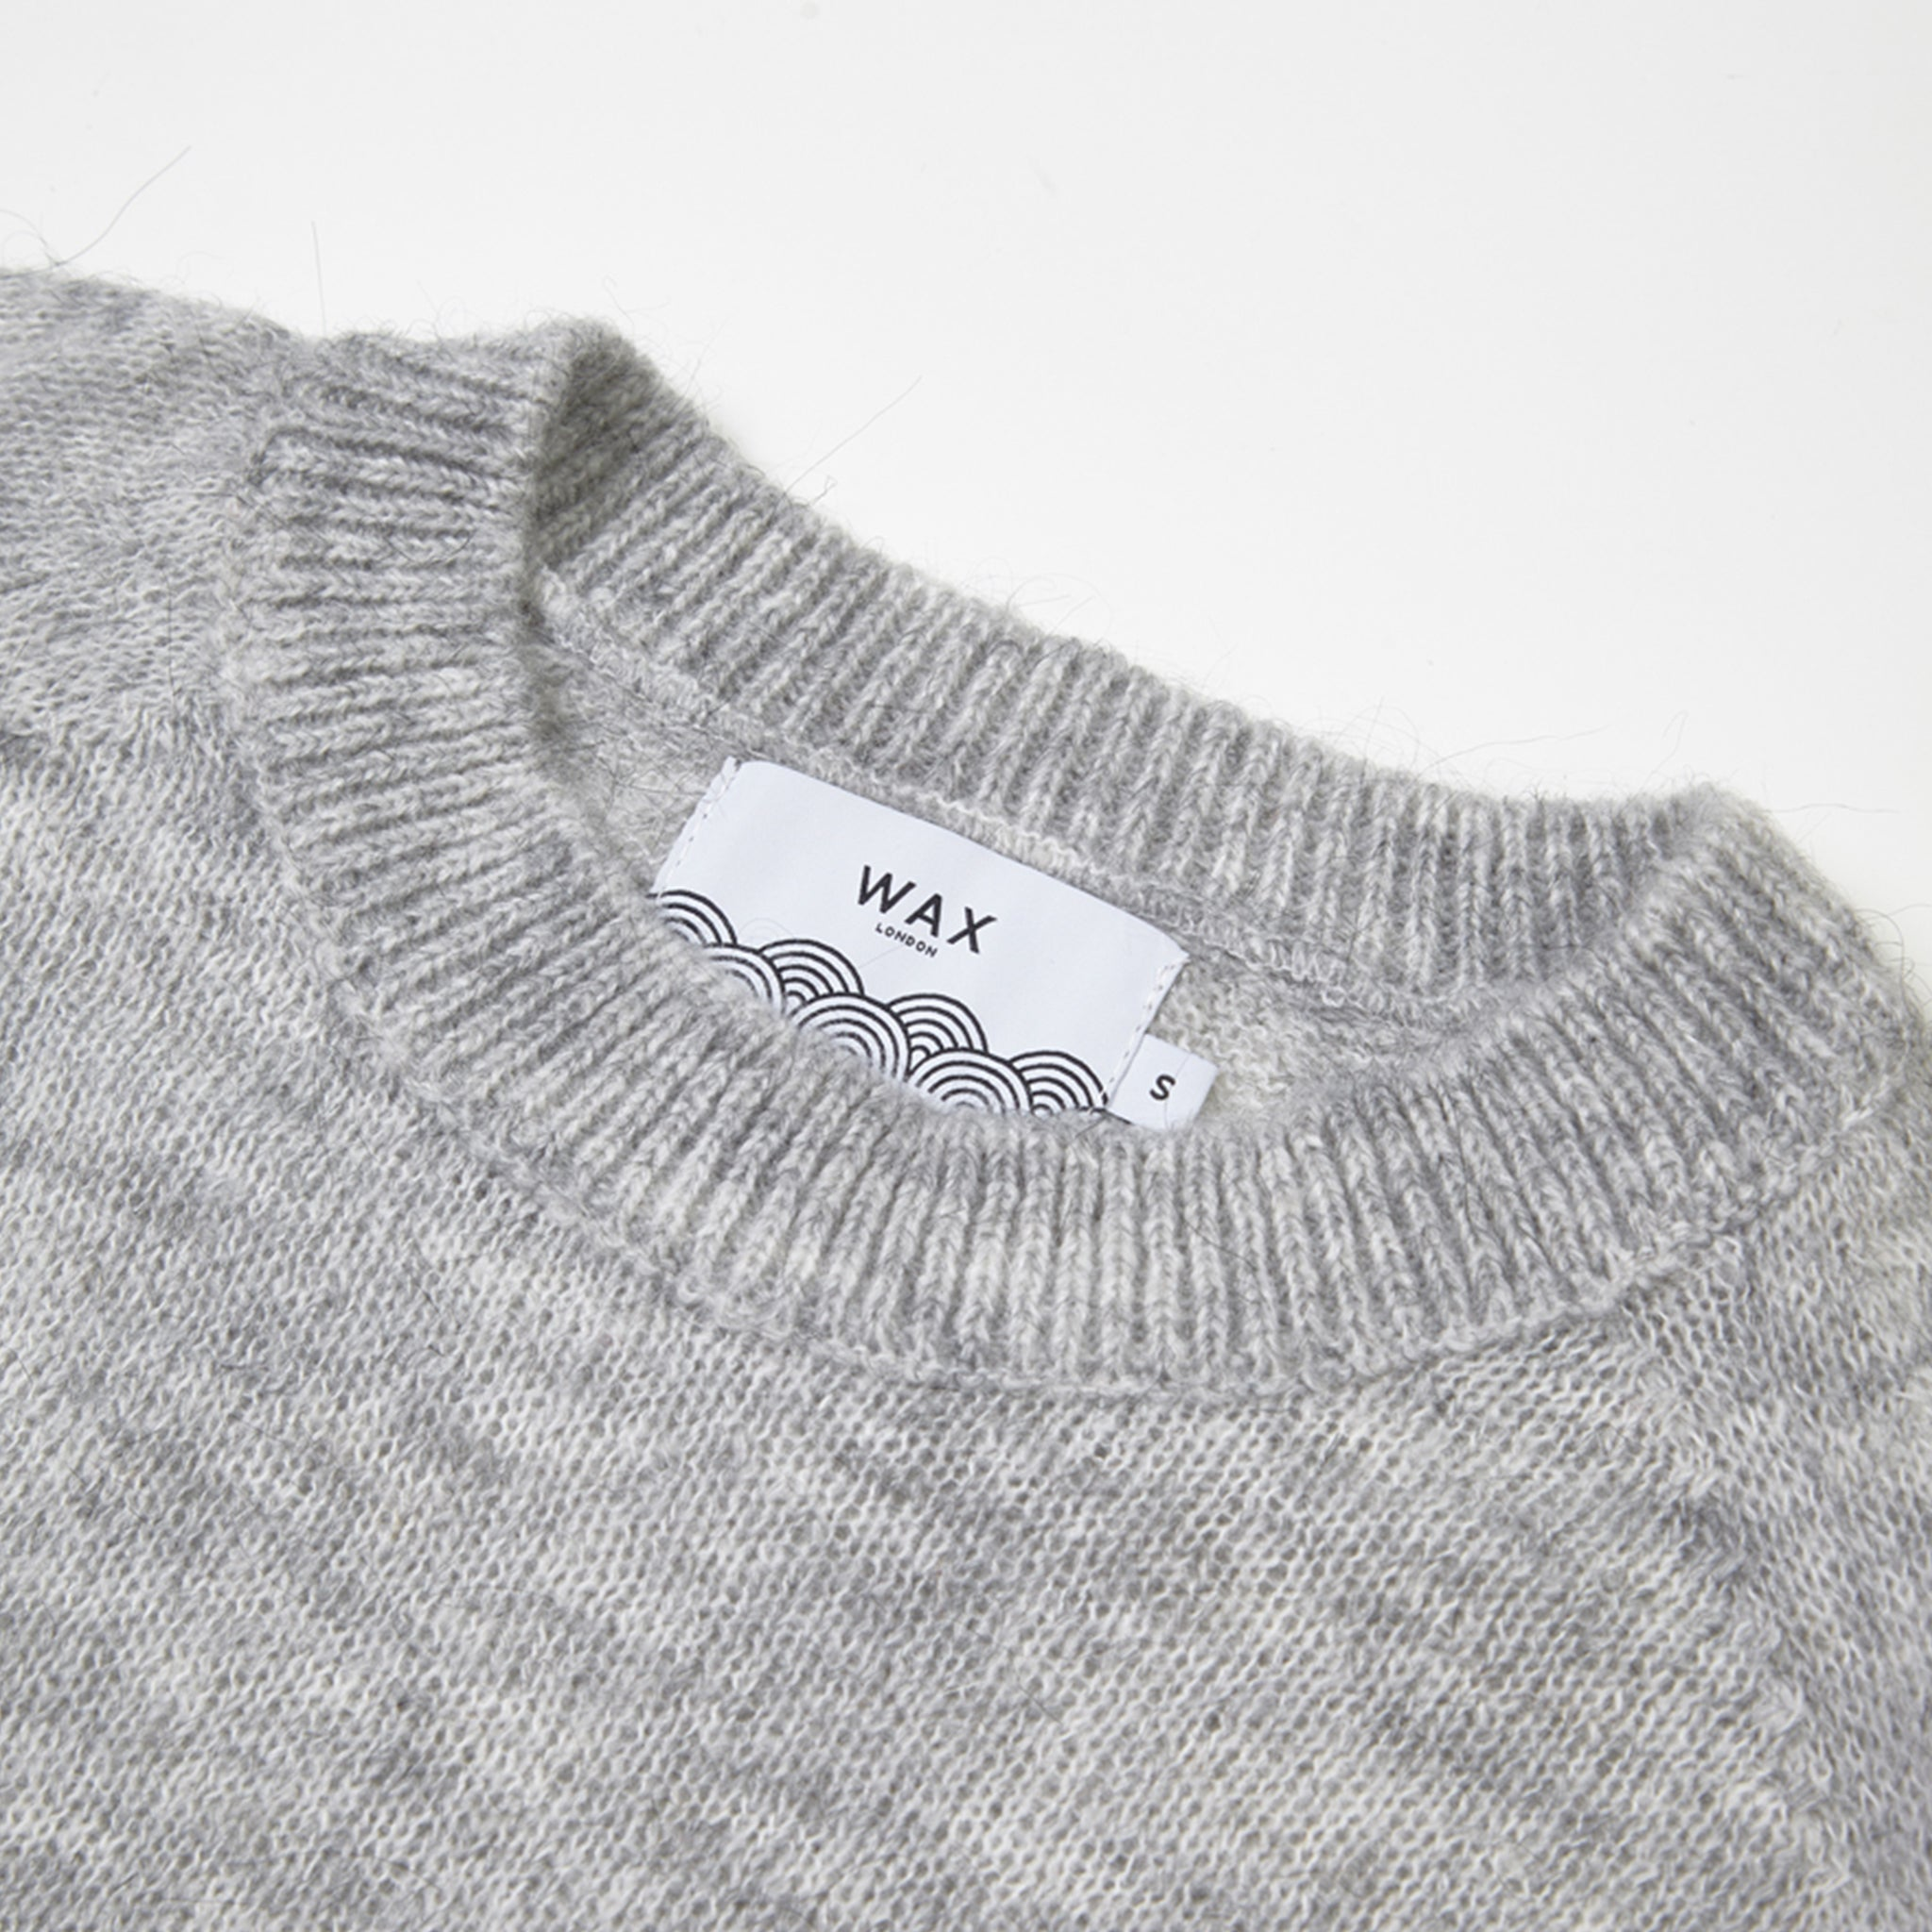 Wax London Alp Knitted Jumper in Grey